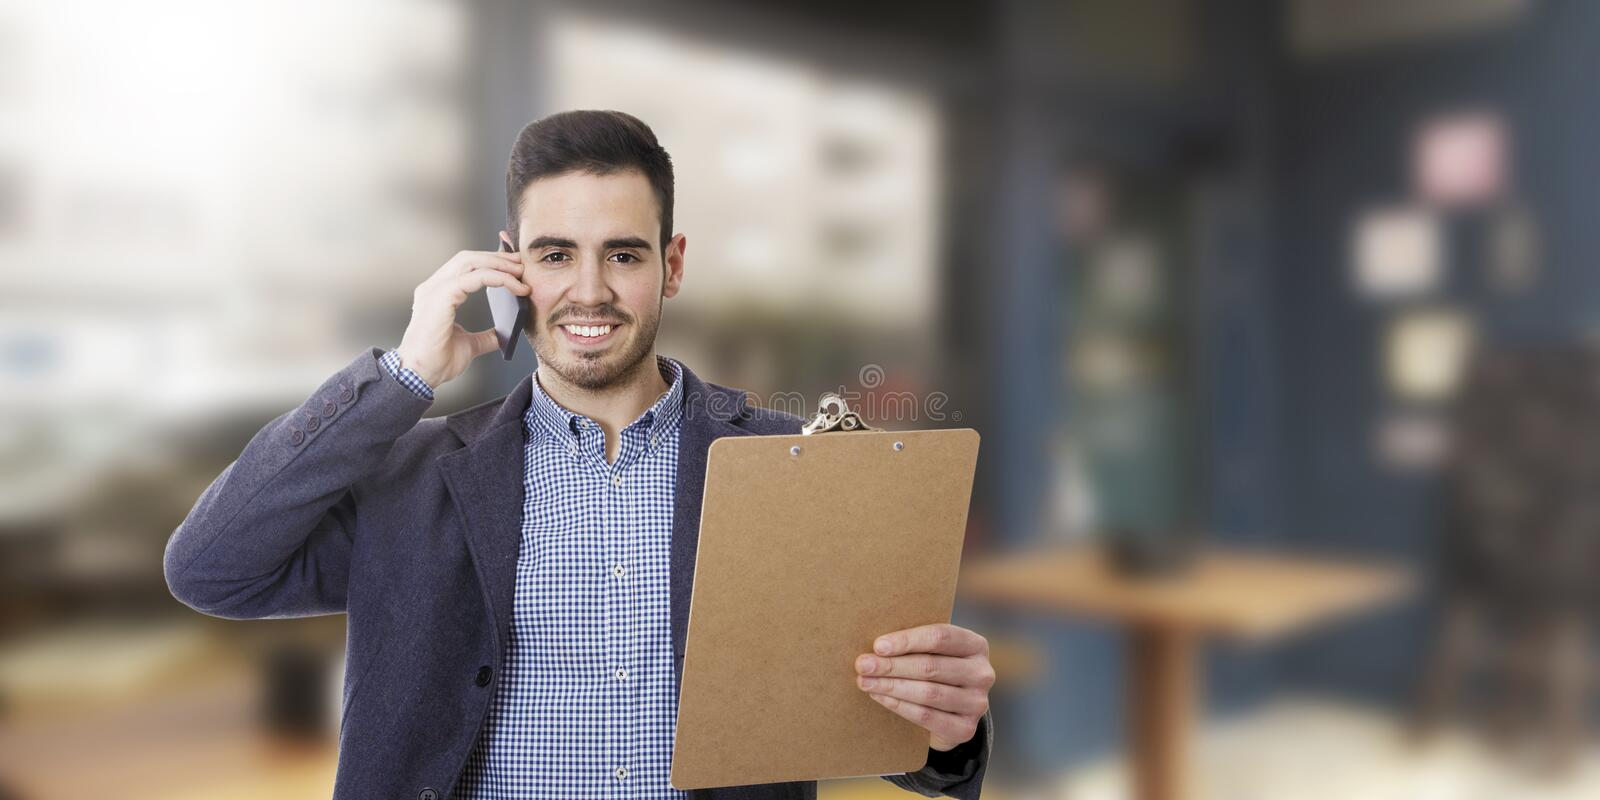 Business man with mobile phone royalty free stock photos